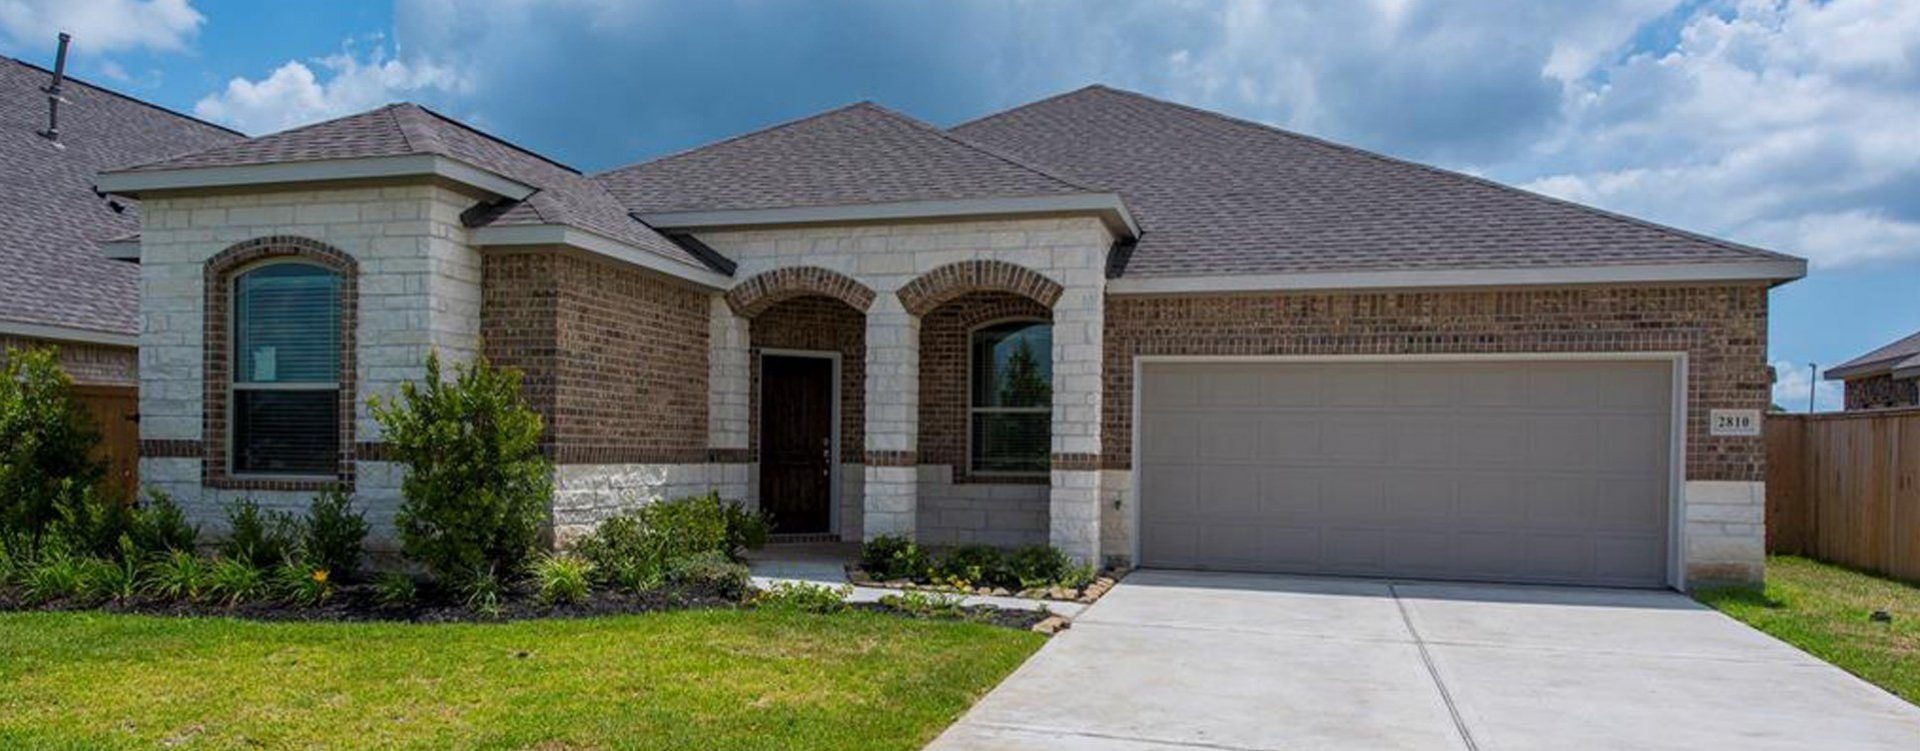 Humble Texas new community Largo Mar